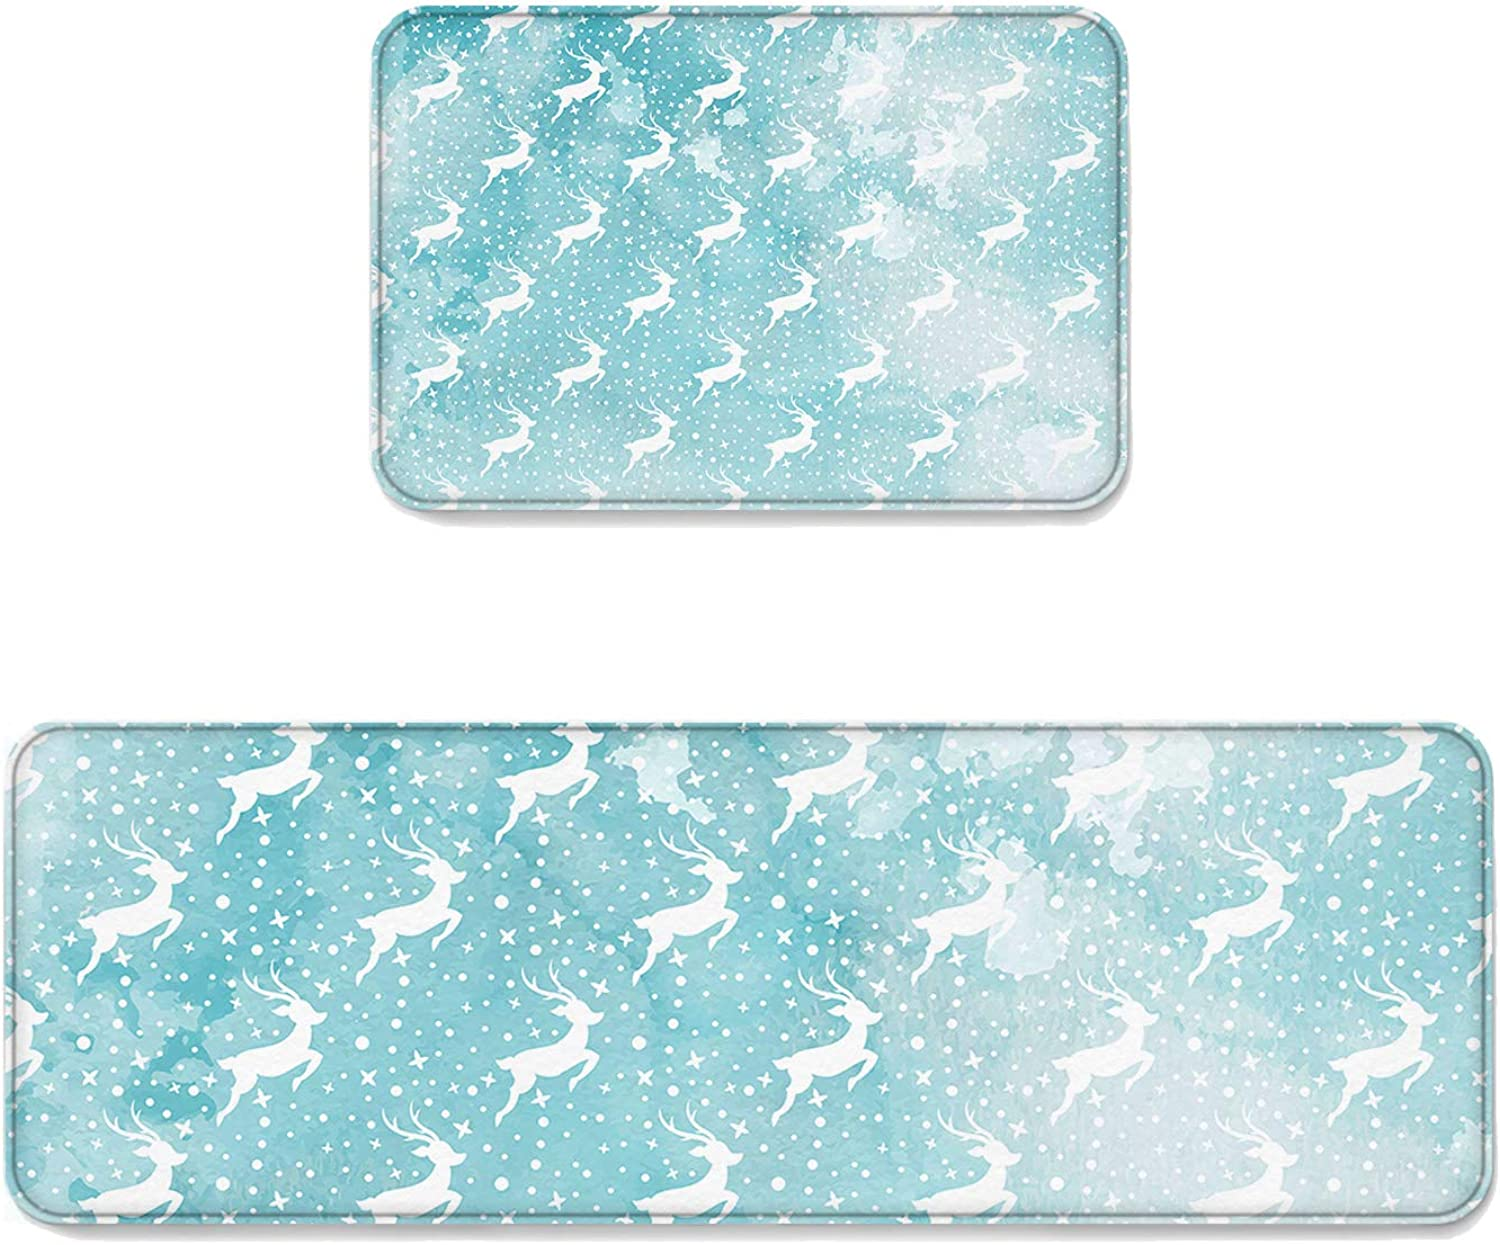 2 pcs Kitchen Mat Doormat Runner Rug Set, Kids Area Rug Bedroom Rug Non-Slip Rubber Backing Door Mats Christmas Xmas Reindeer Flying in Magical Fantasy Starry Night 19.7'' x 31.5'' + 19.7'' x 63''